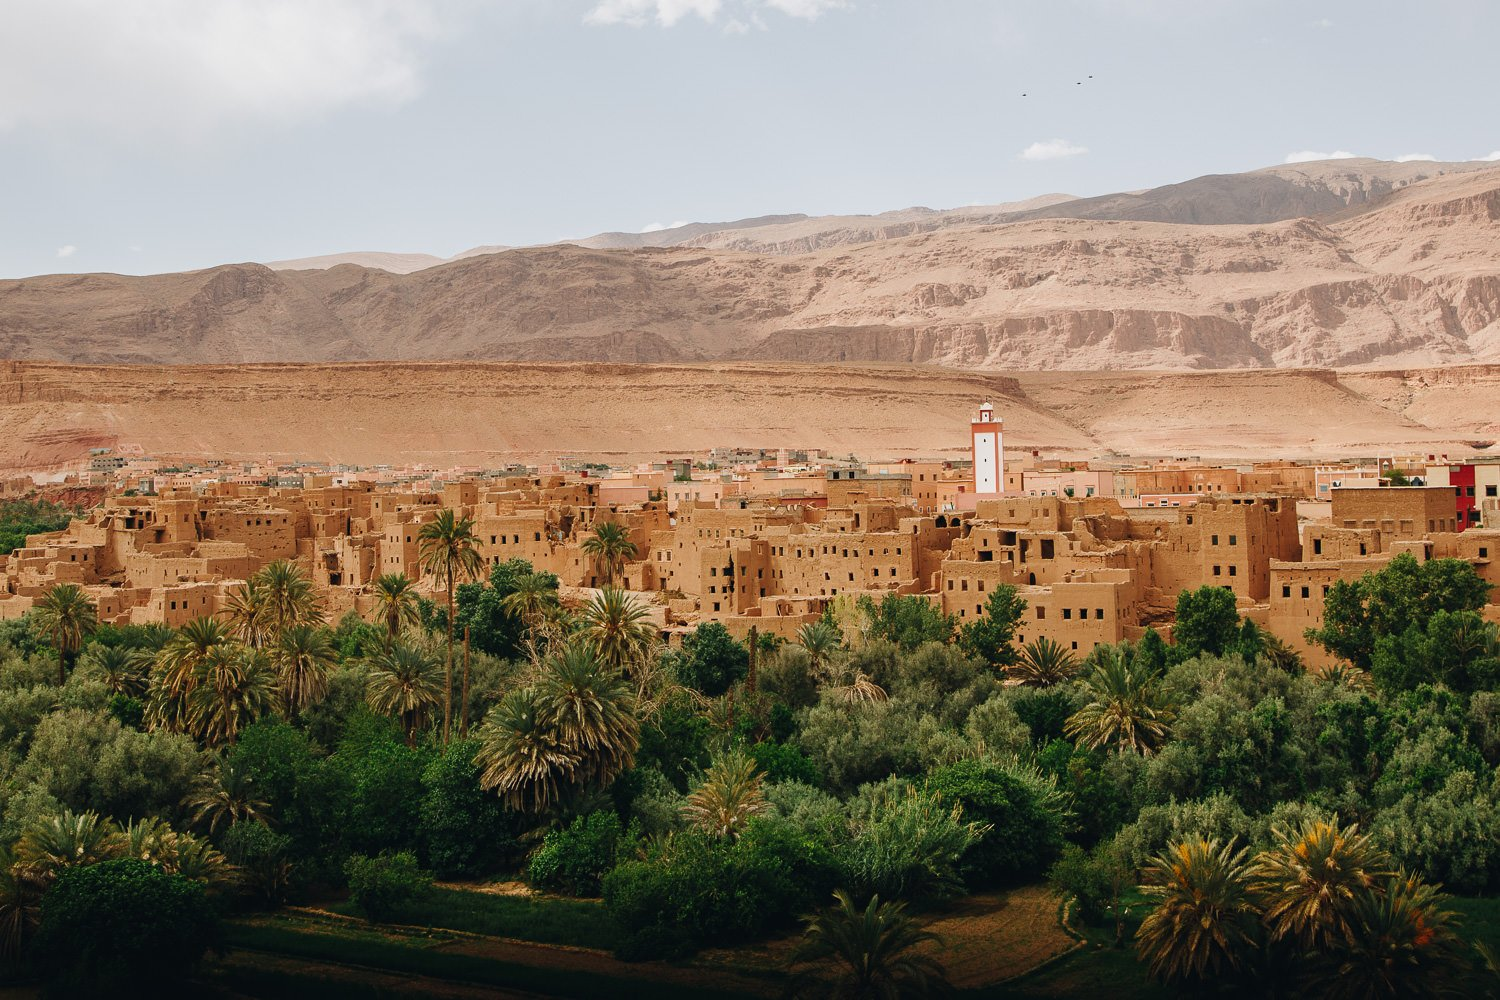 From mountains to medinas – 20 awe-inspiring places in Morocco to inspire your next trip